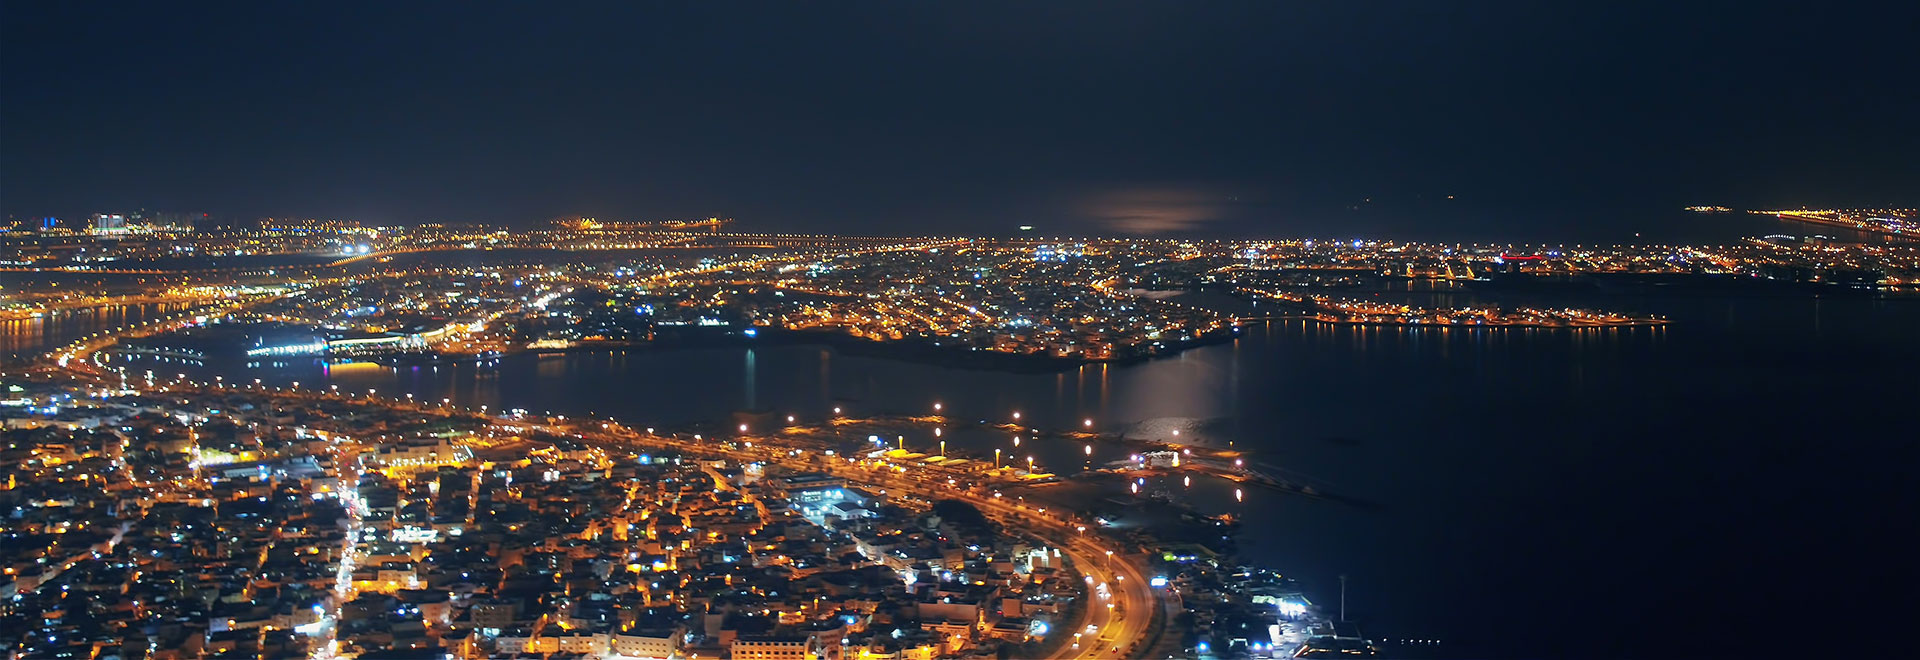 aerial-night-manama-world-trade-center-2